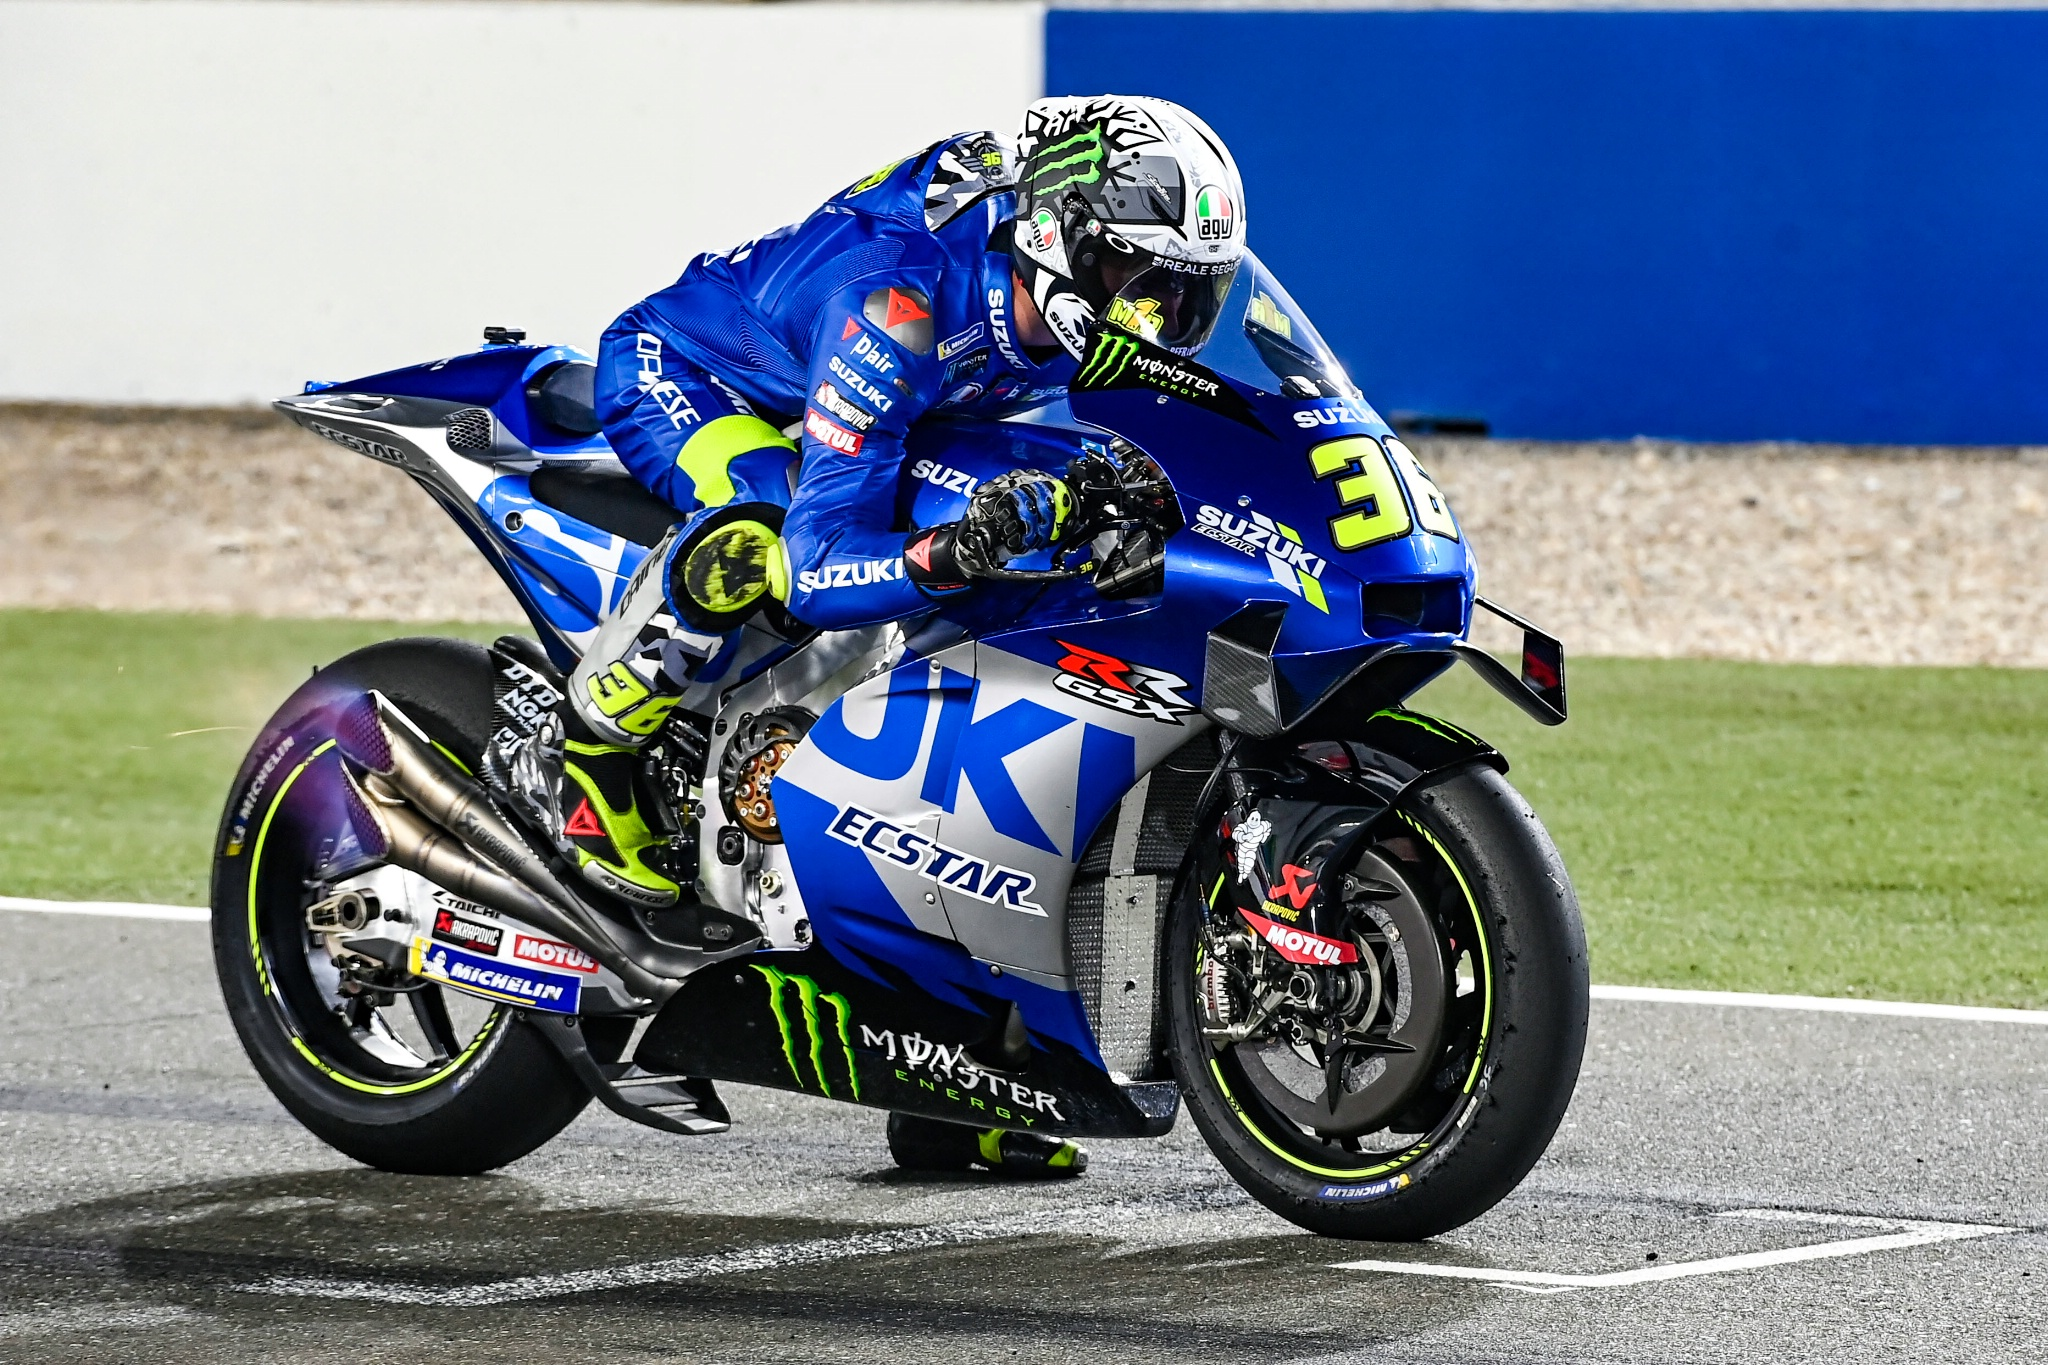 Joan Mir, practice start, flames, Qatar MotoGP test, 6 March 2021